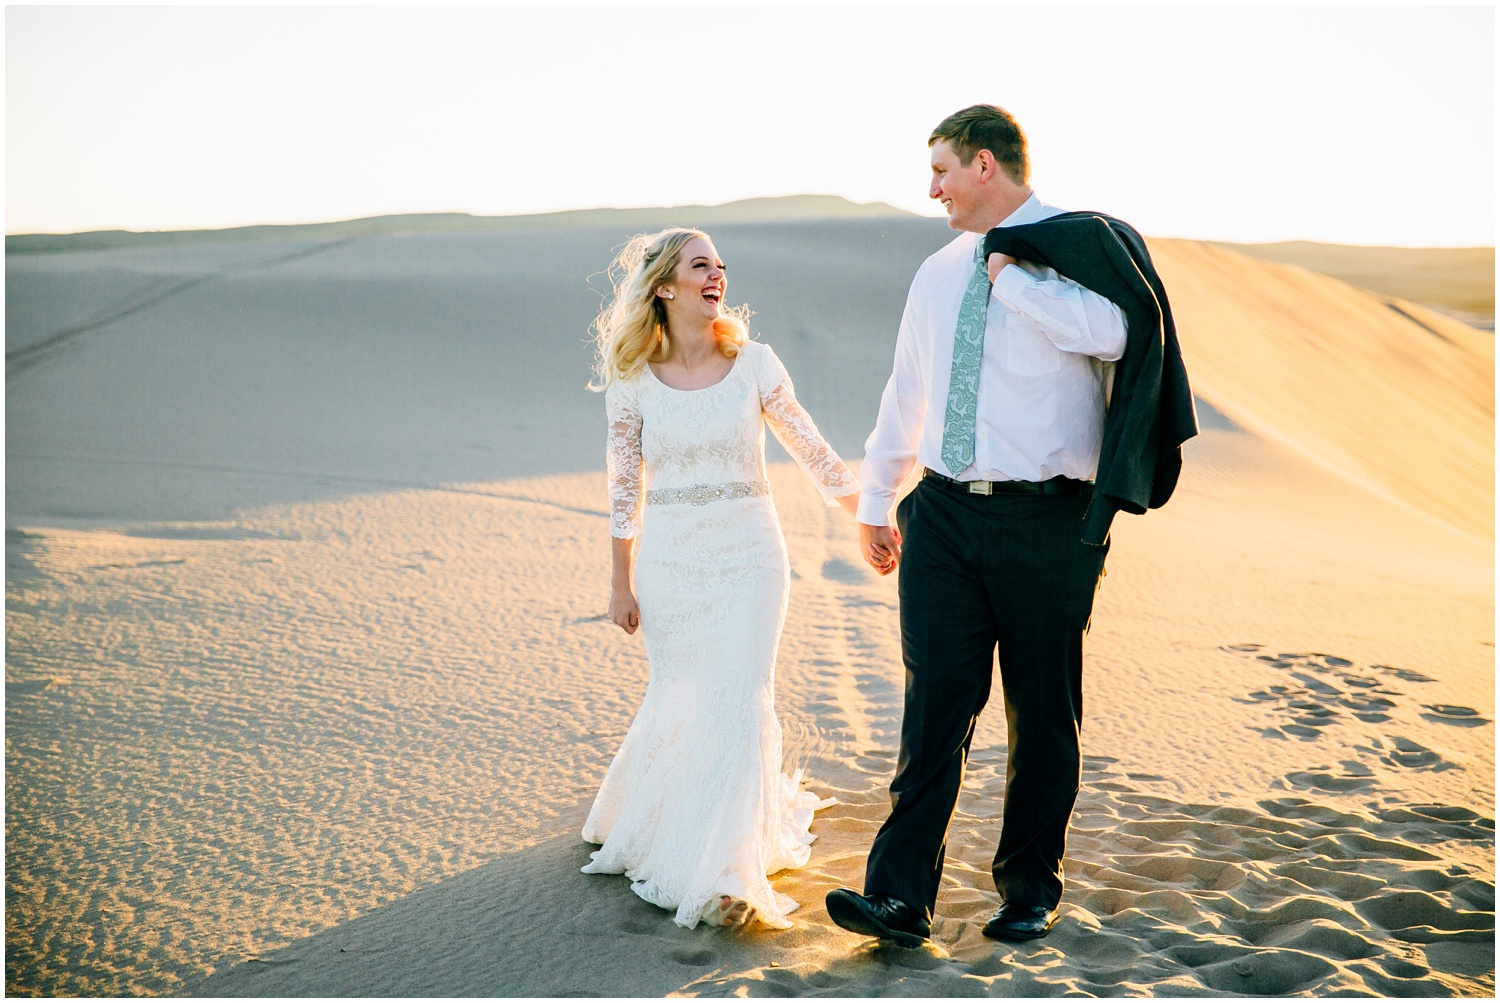 saint-anthony-sand-dunes-bridals-idaho-engagements-colorado-wyoming-wedding-photographer_0746.jpg